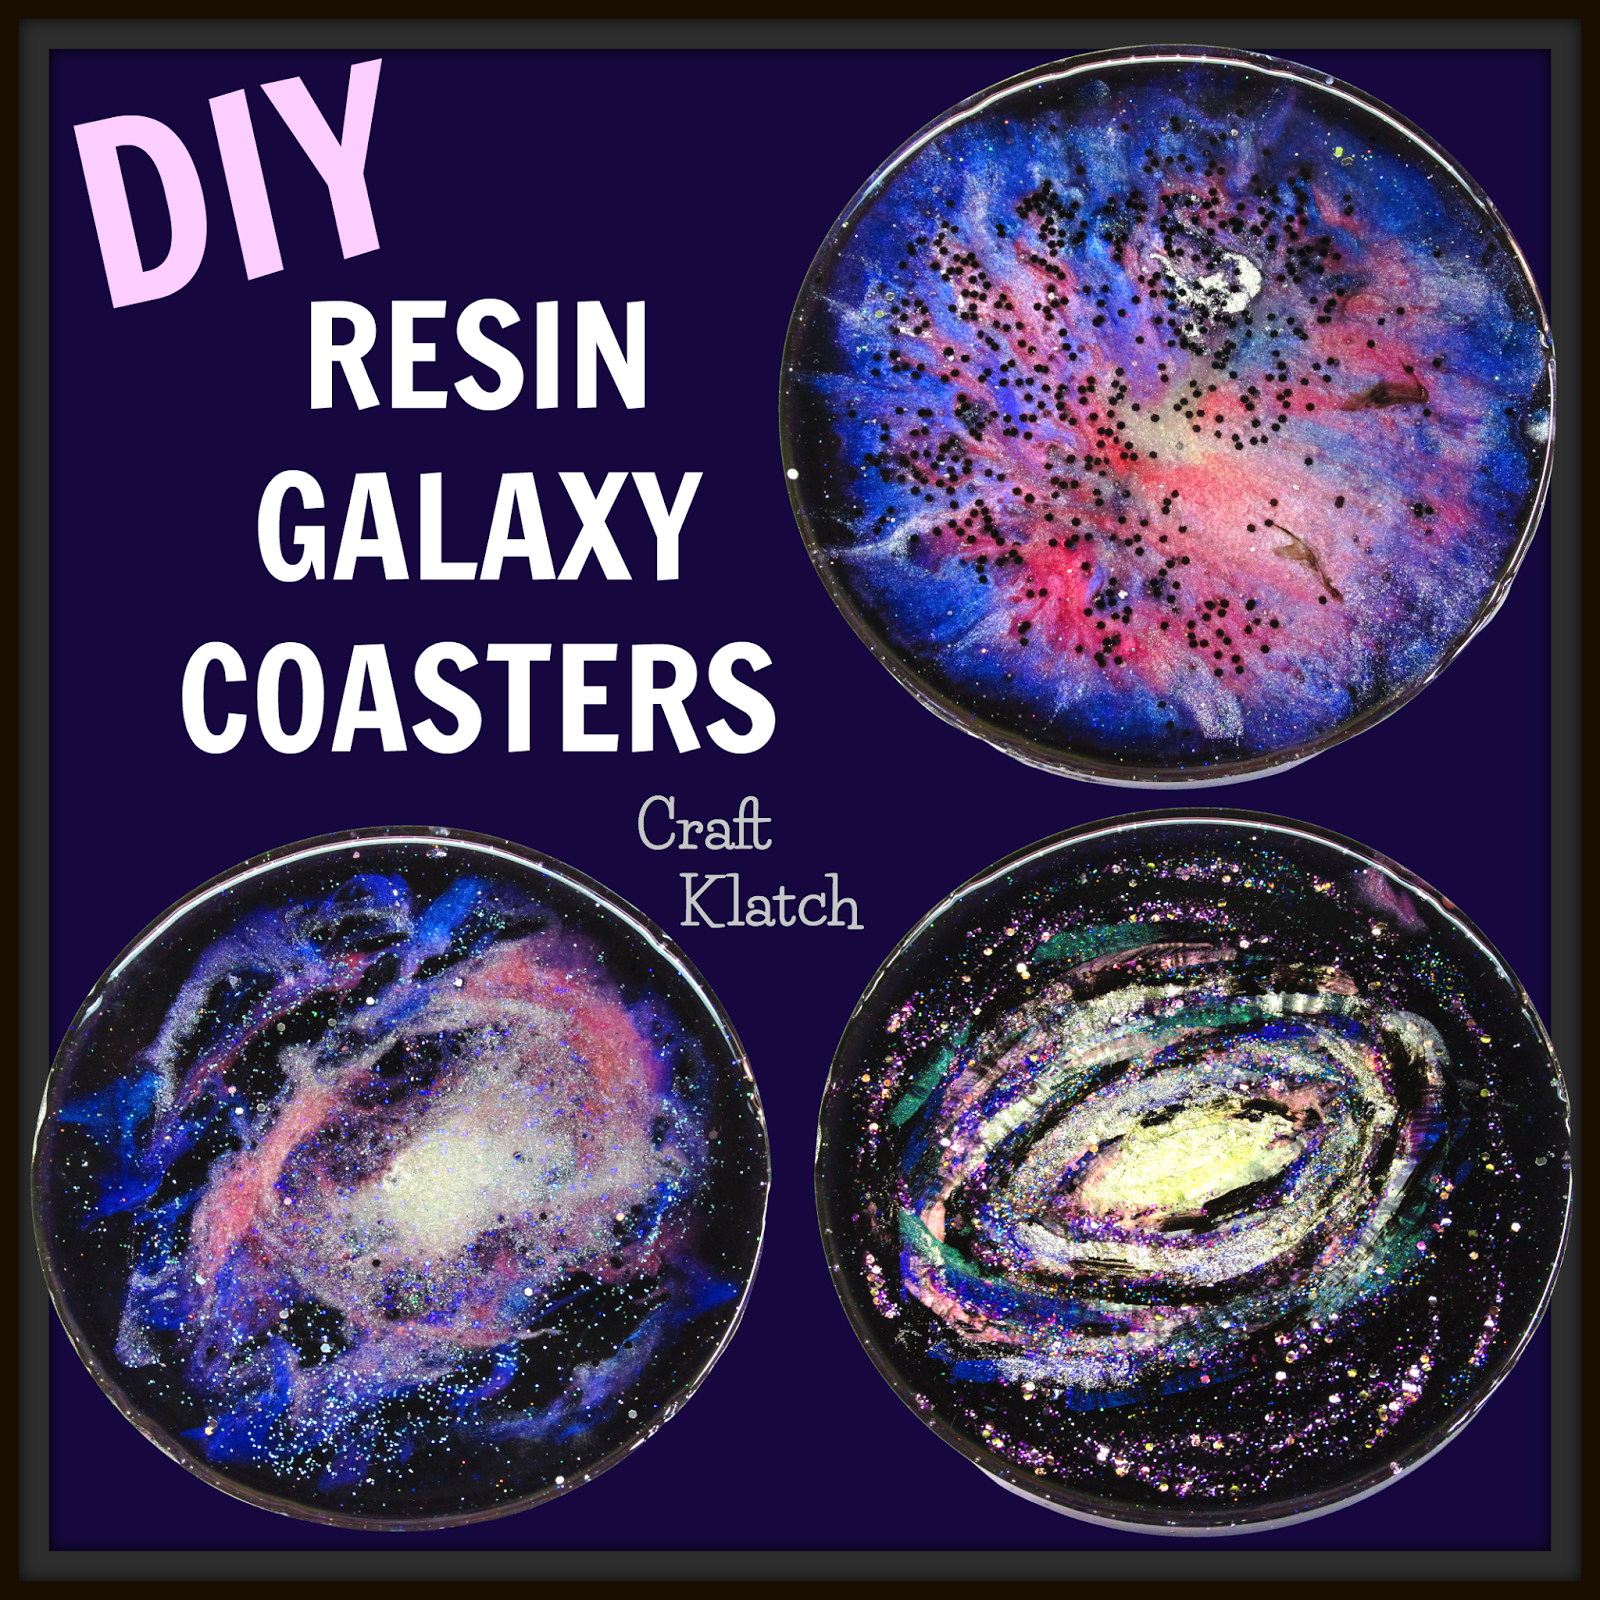 Craft Klatch Resin Galaxy Coasters Diy Project Craft Klatch